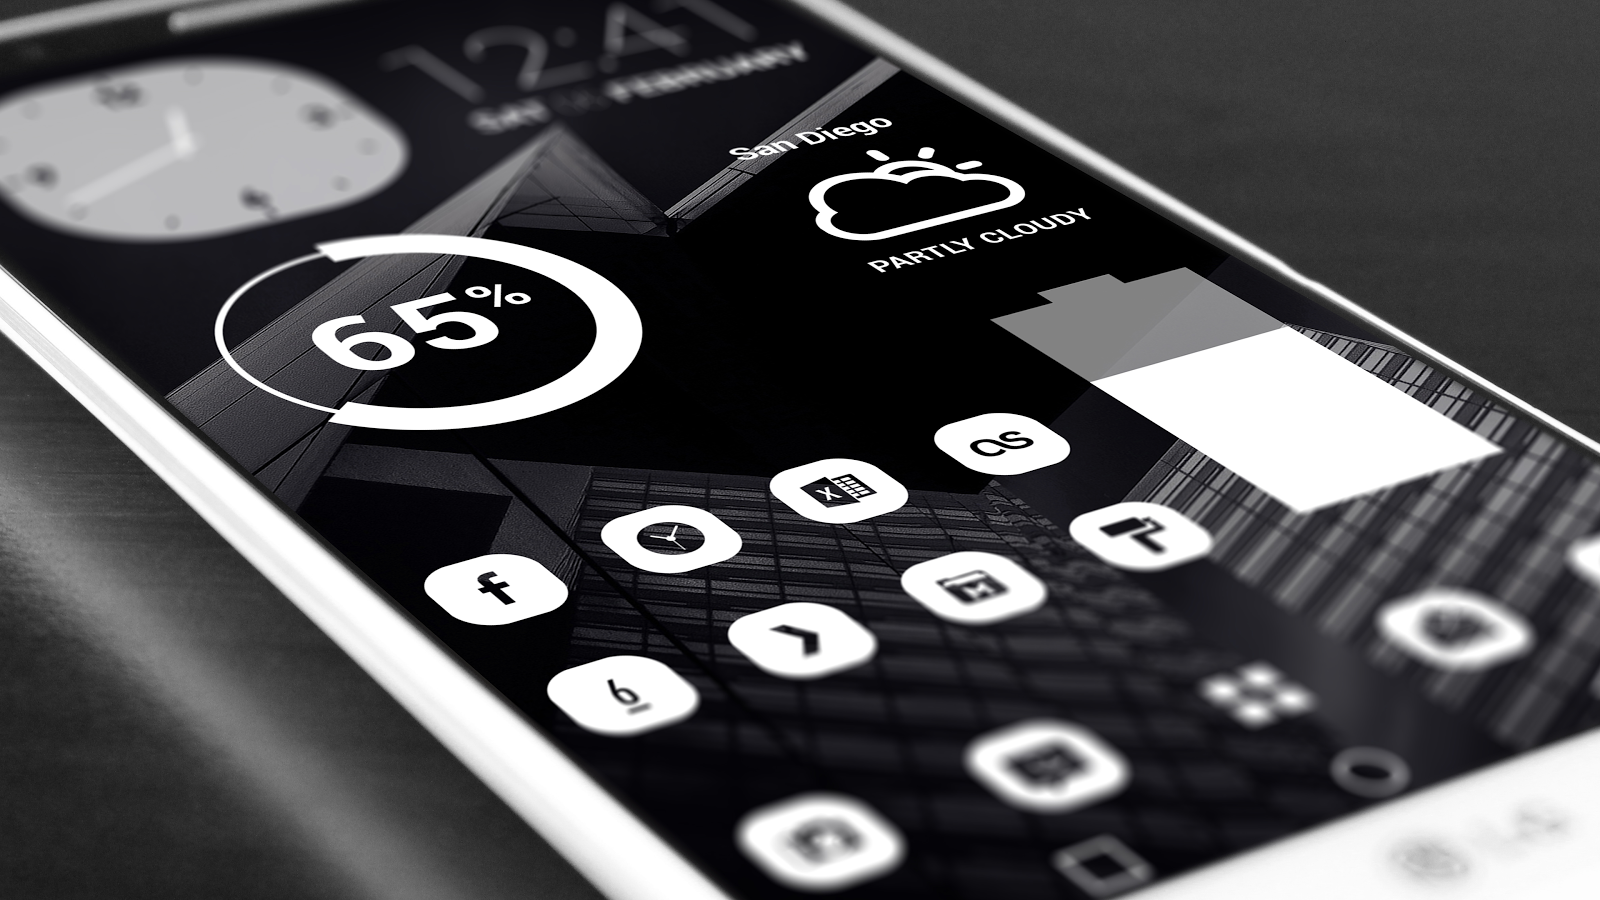 Pasty Pro - White Icon Pack Screenshot 8